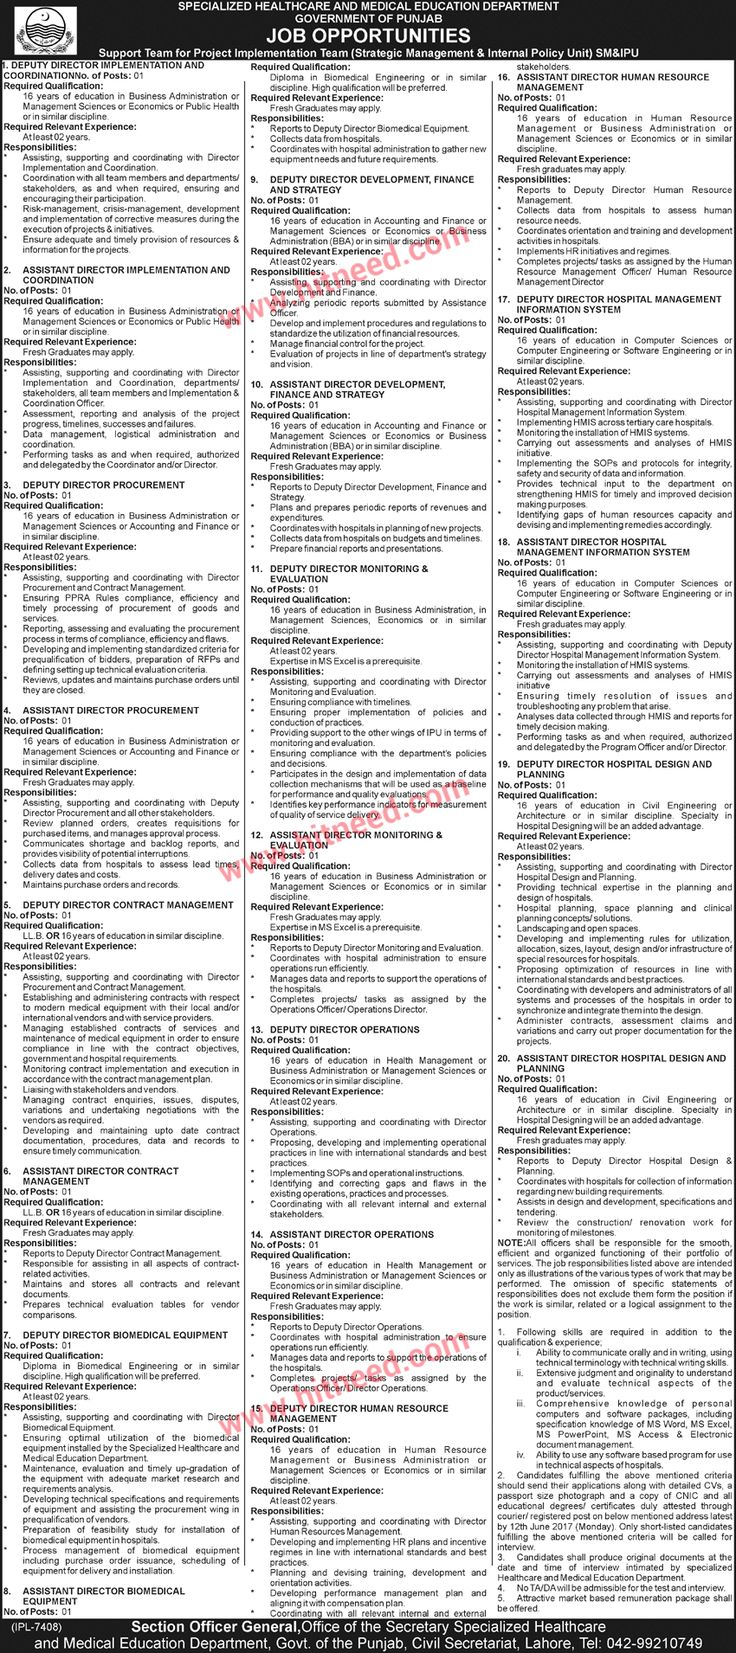 Specialized Healthcare and Medical Education Department, Dy./Assistant Director Jobs Jun 2017 Last Date: 12-06-2017   #Assistant Director #Deputy Director #Health Jobs #Healthcare Jobs #Lahore Jobs